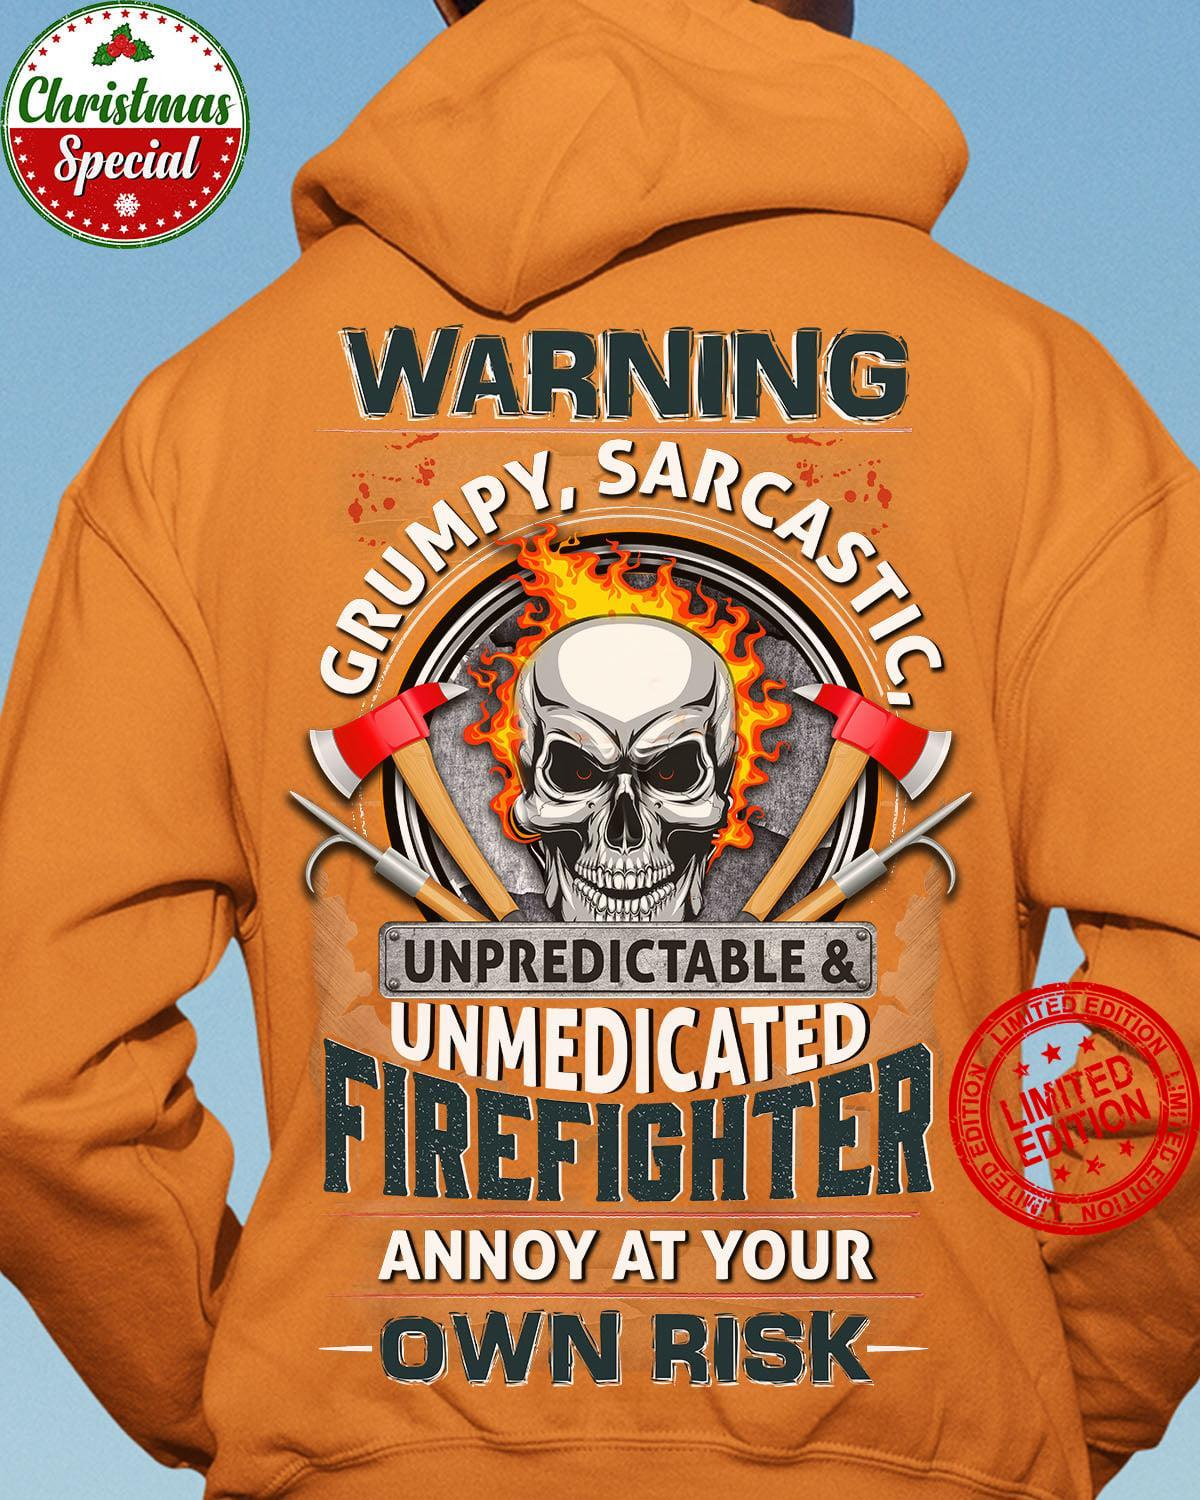 Warning Grumpy Sarcastic Unpredictable & Unmedicated Firefighter Annoy At Your Own Risk Shirt